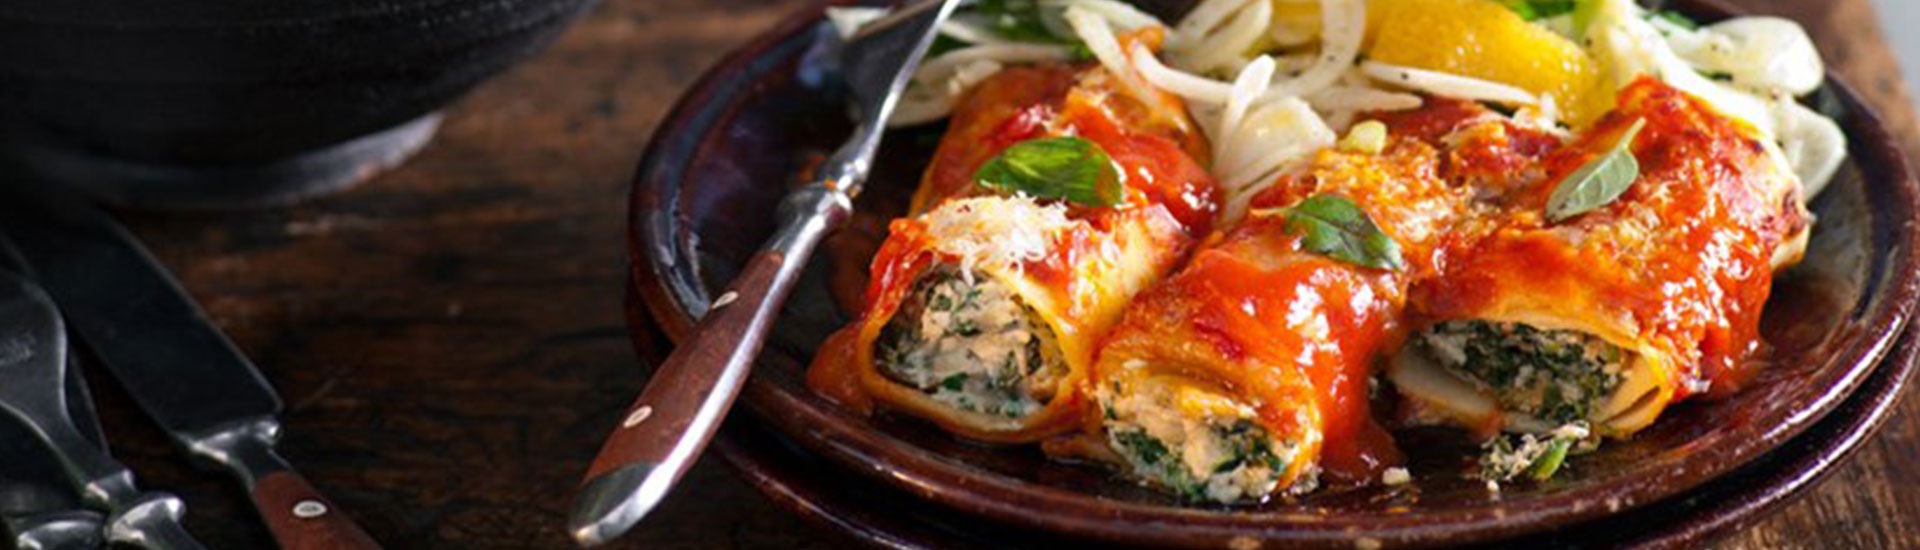 how to cook frozen cannelloni